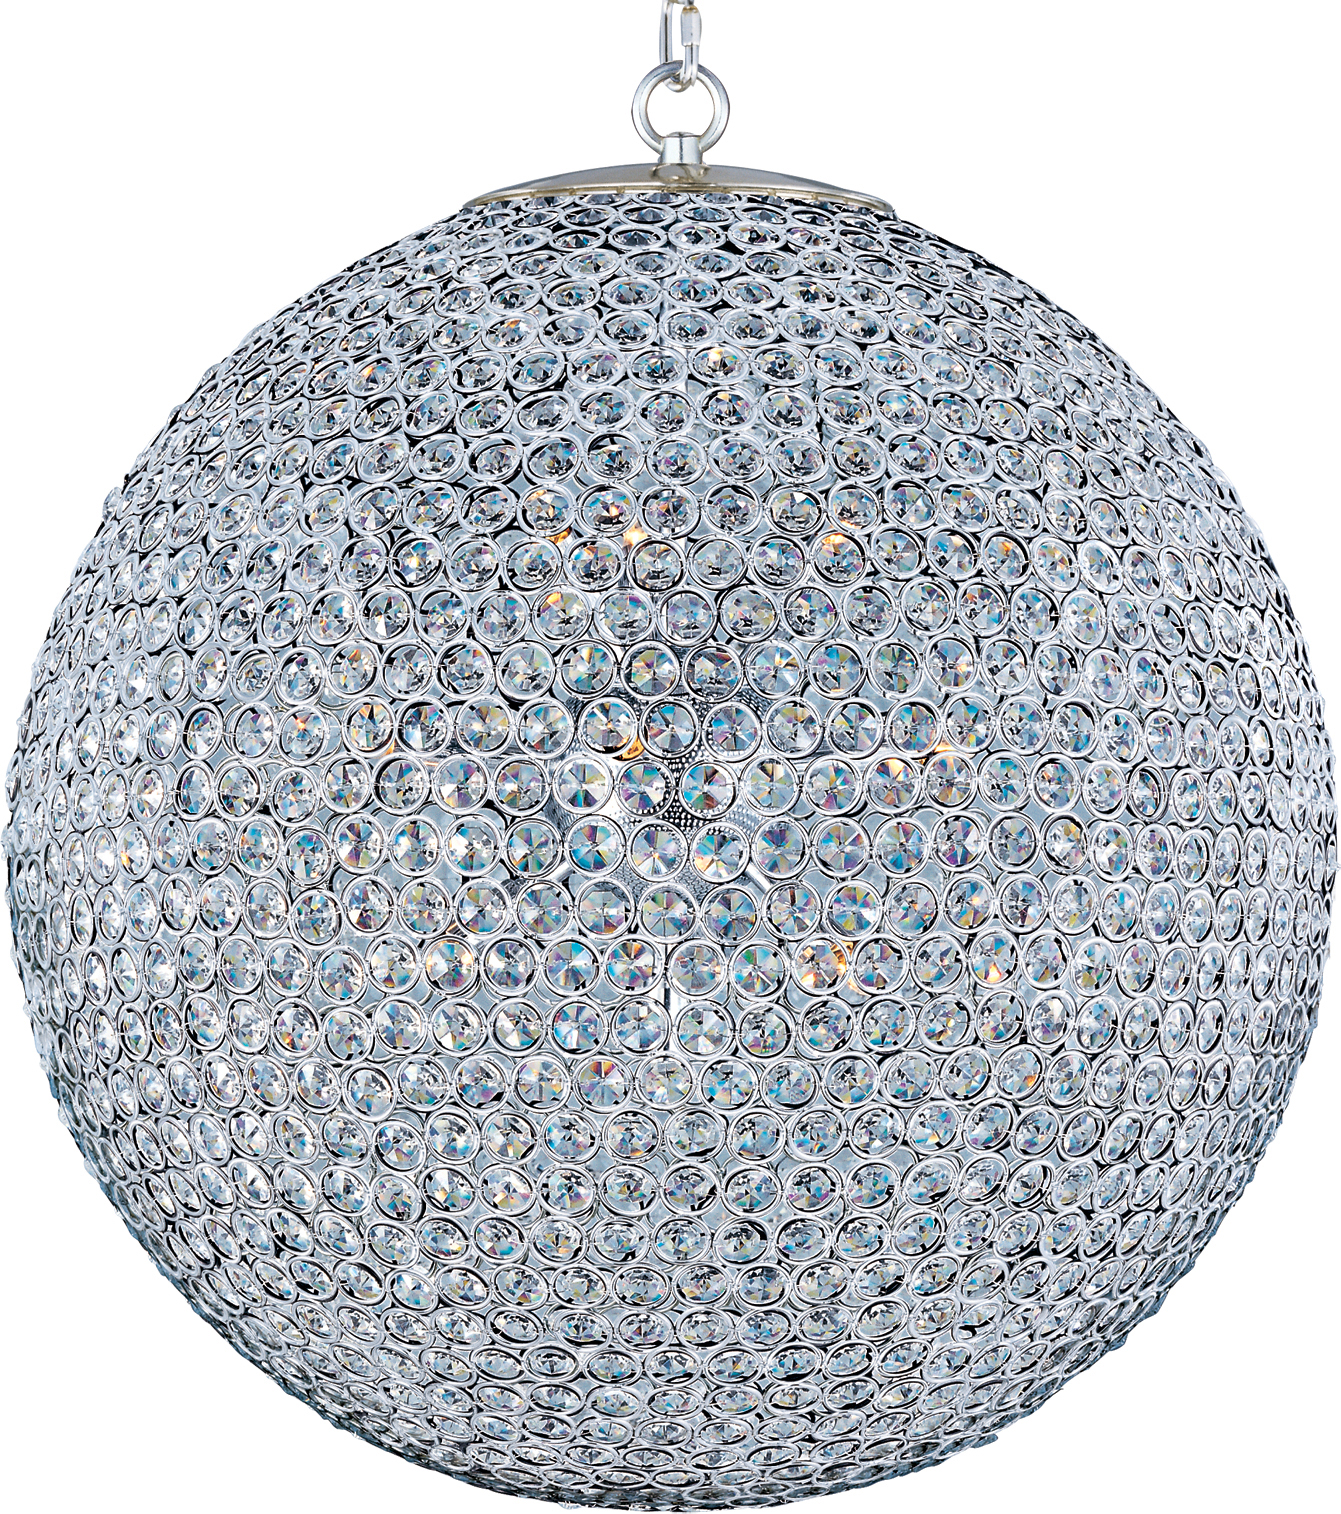 Glimmer 12-light chandelier